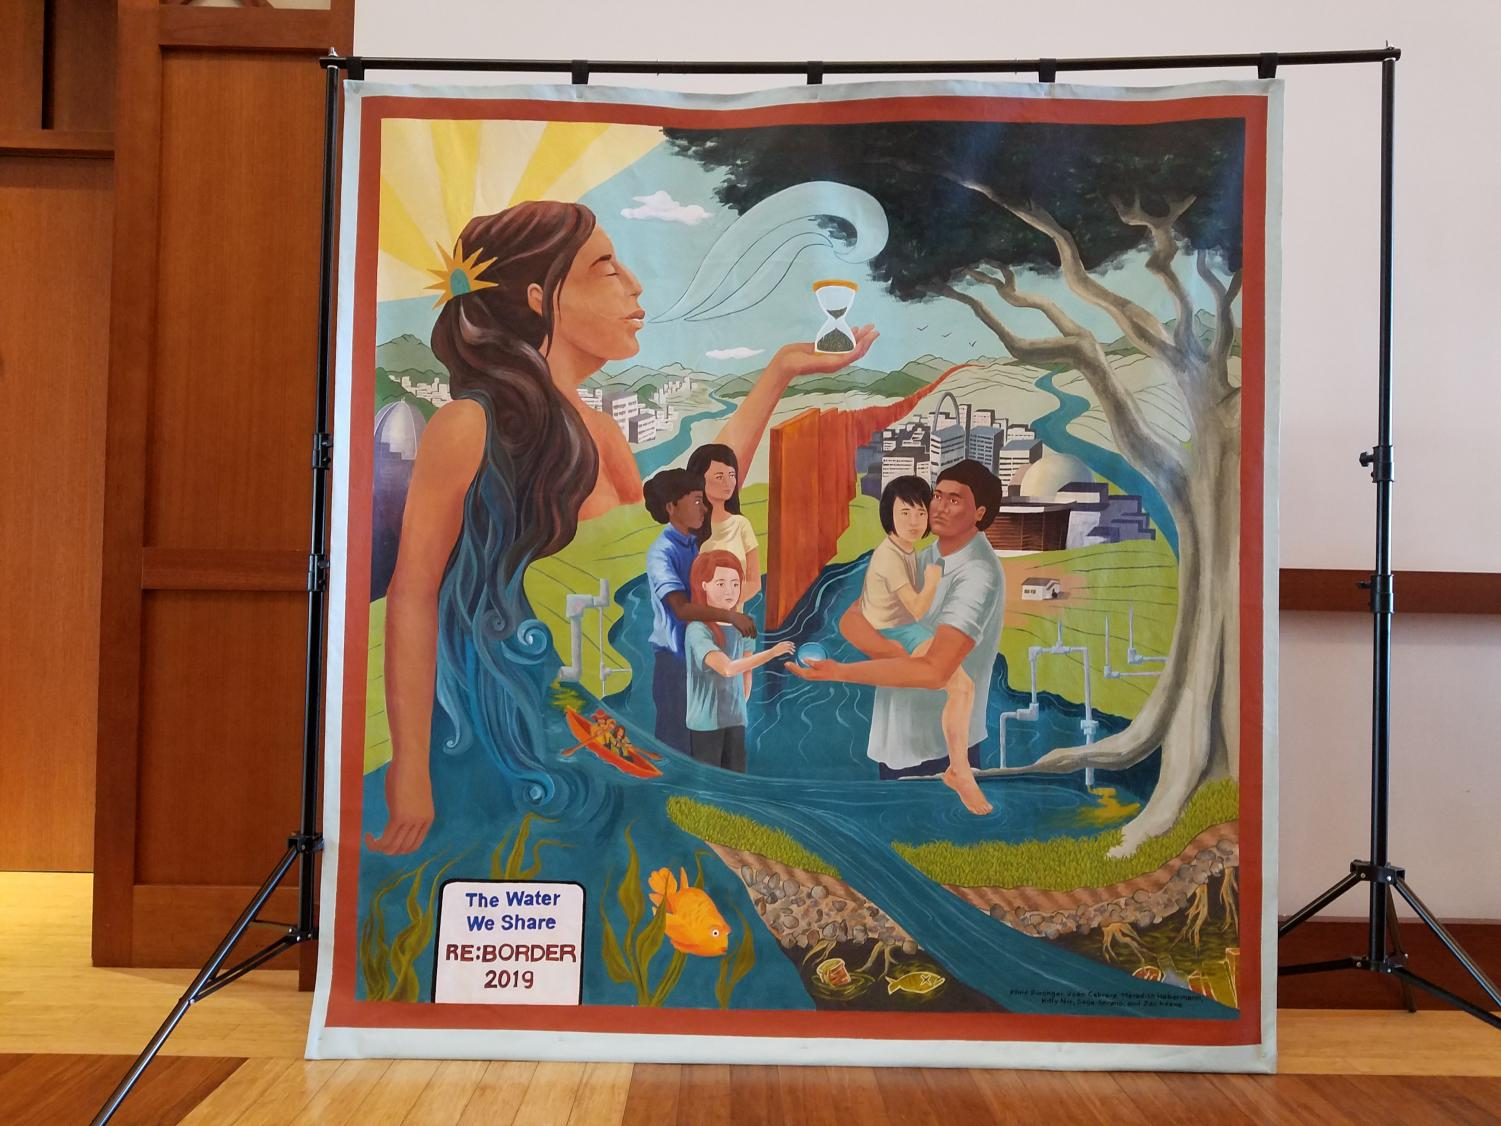 Above is a painting that was done for the Reborder Conference by Kline Swonger, Juan Cabrera Meredith Habermann, Kitty Nix, Sage Serano and Zac Keane.